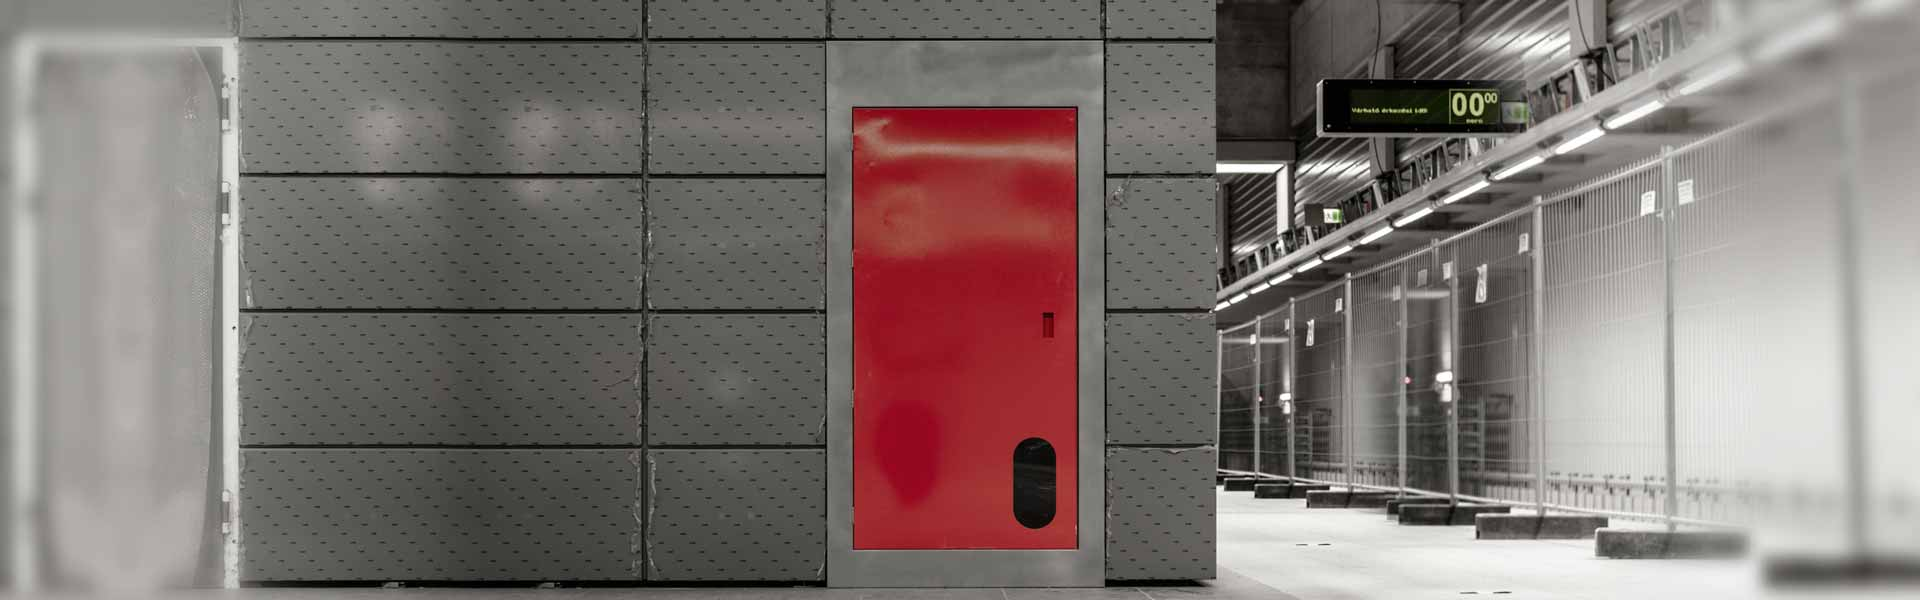 Certified blast doors and ballistic doors and structures for the protection of critical areas